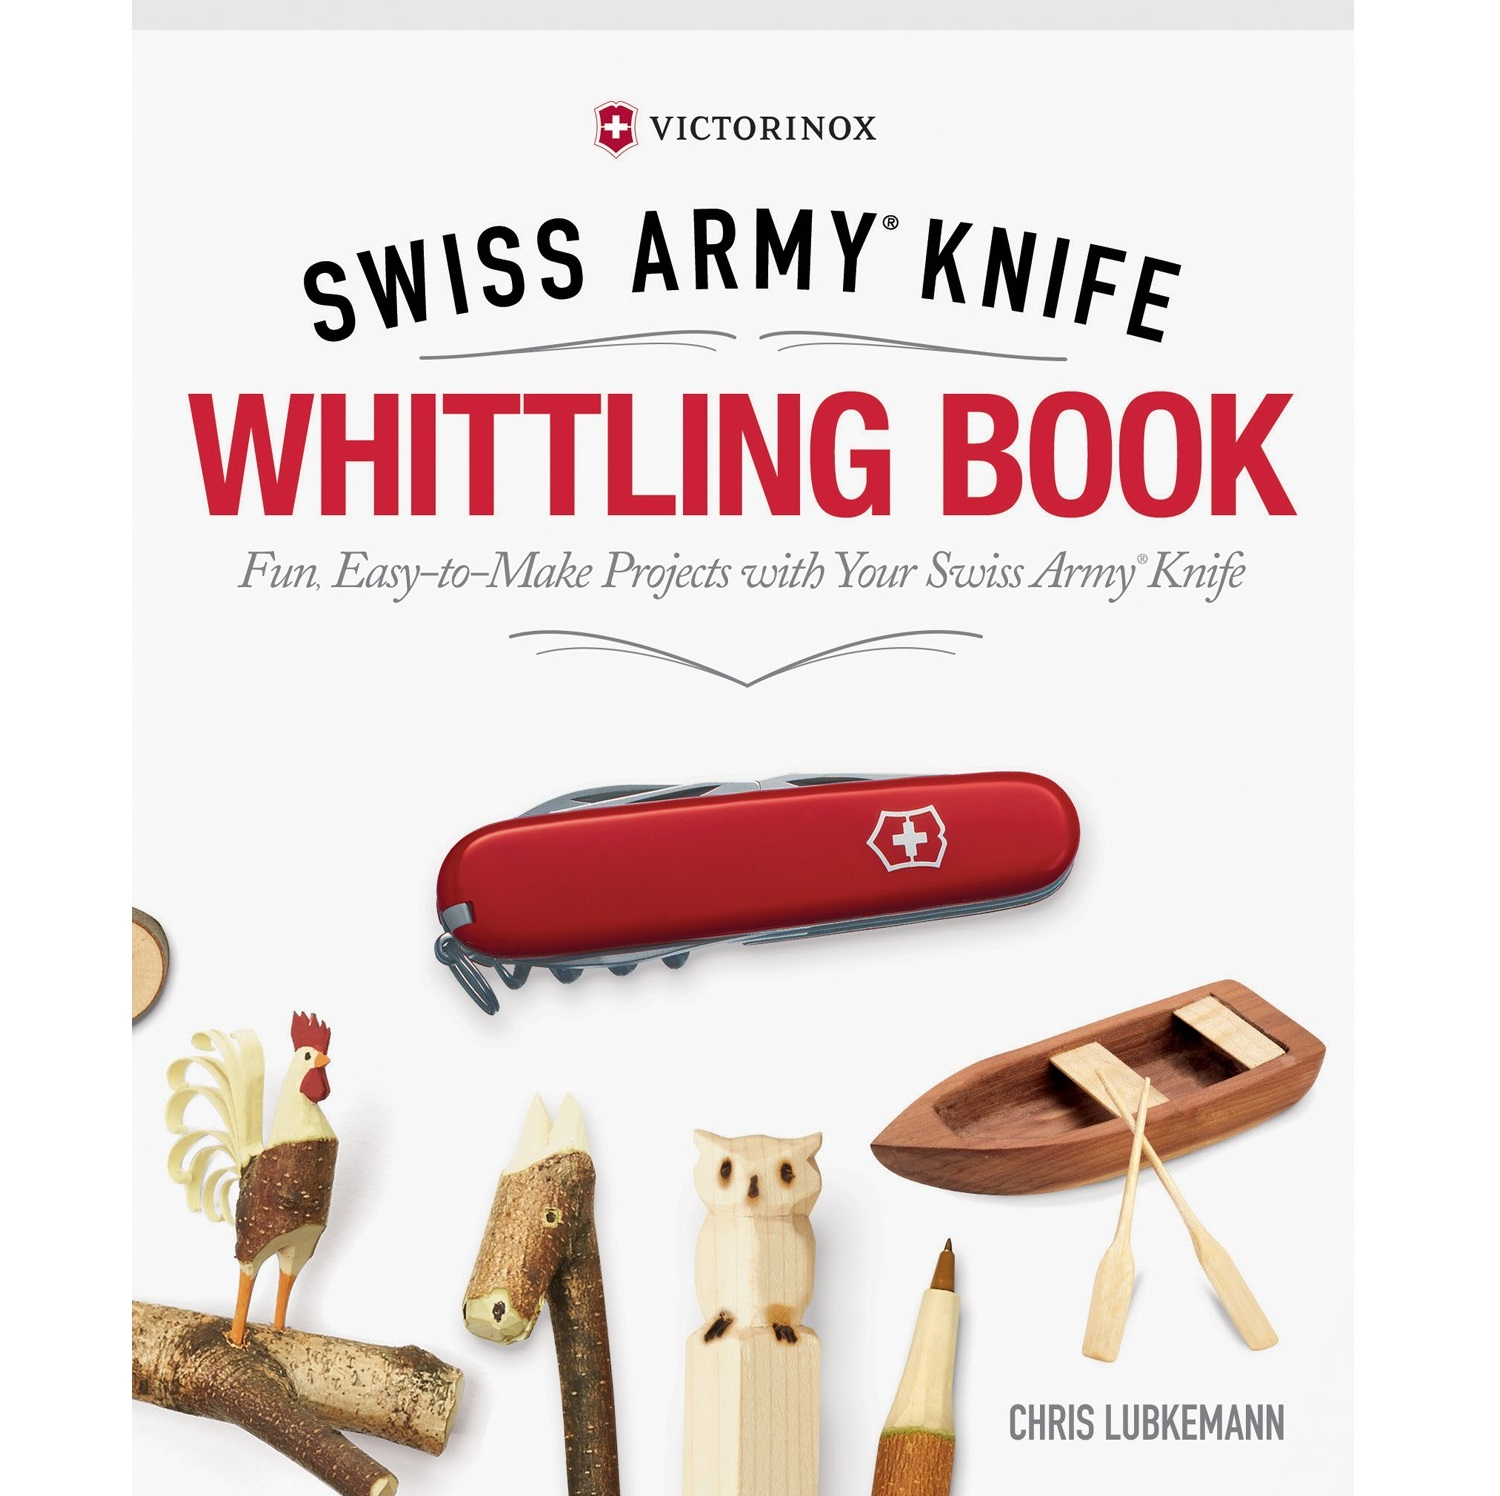 Victorinox Swiss Army Knife Whittli